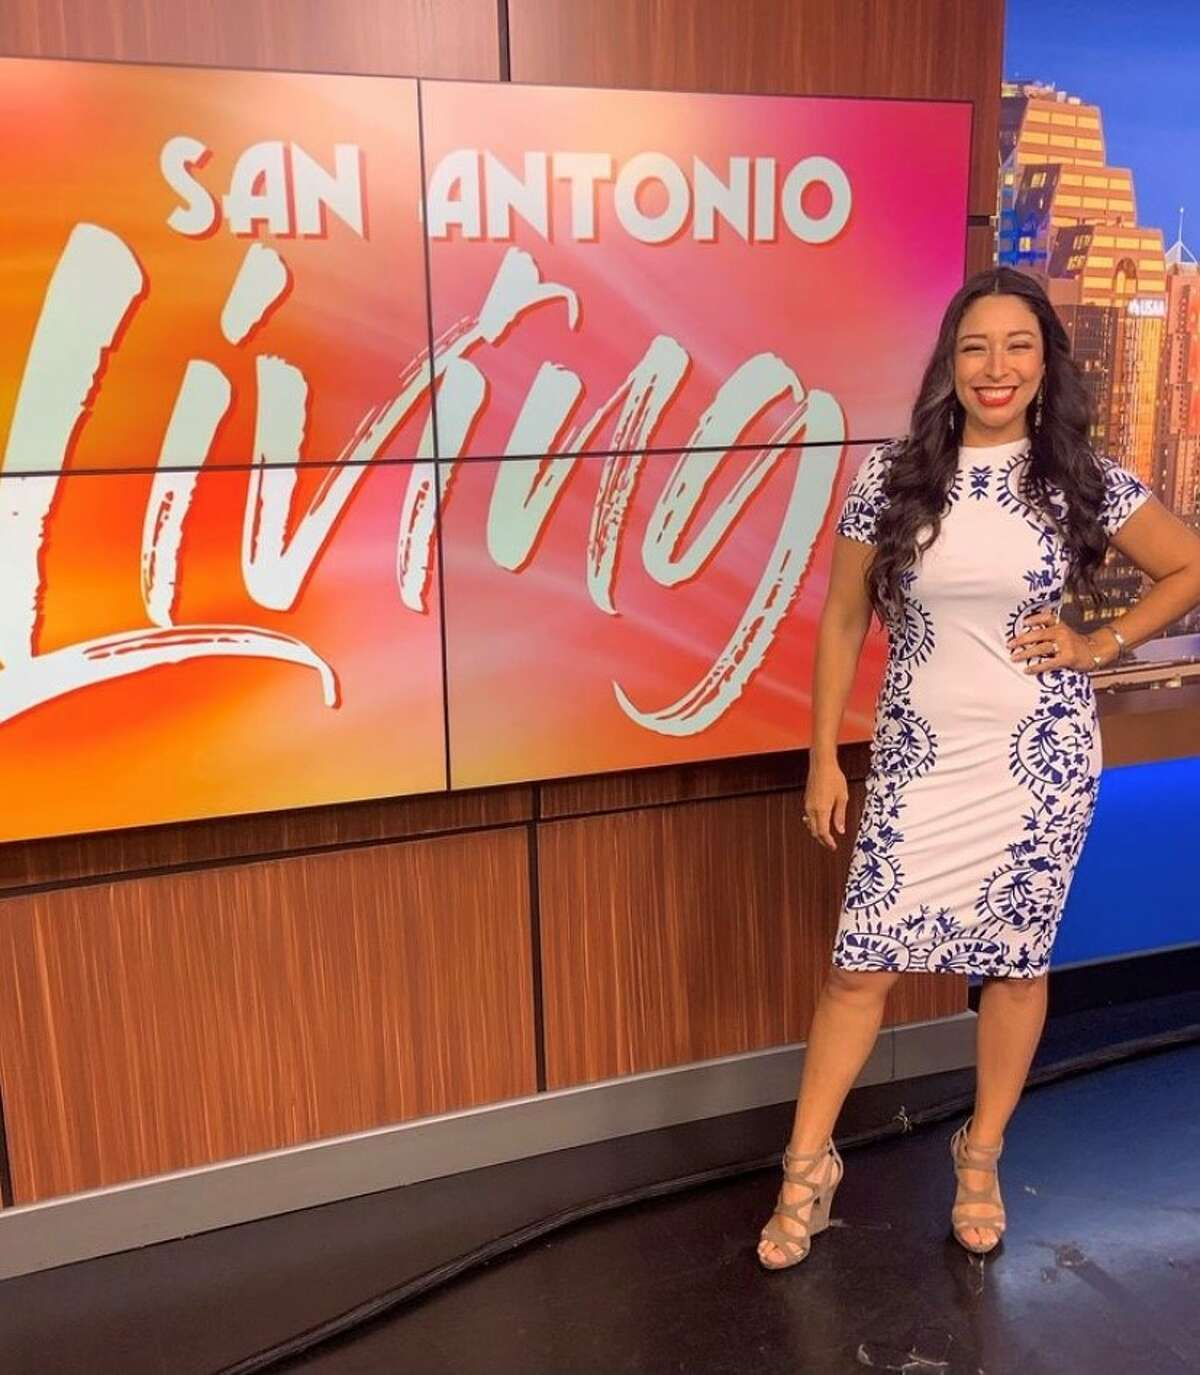 San Antonio Living co-host Denise Cabello said goodbye to viewers after 8 years at the NBC affiliate.